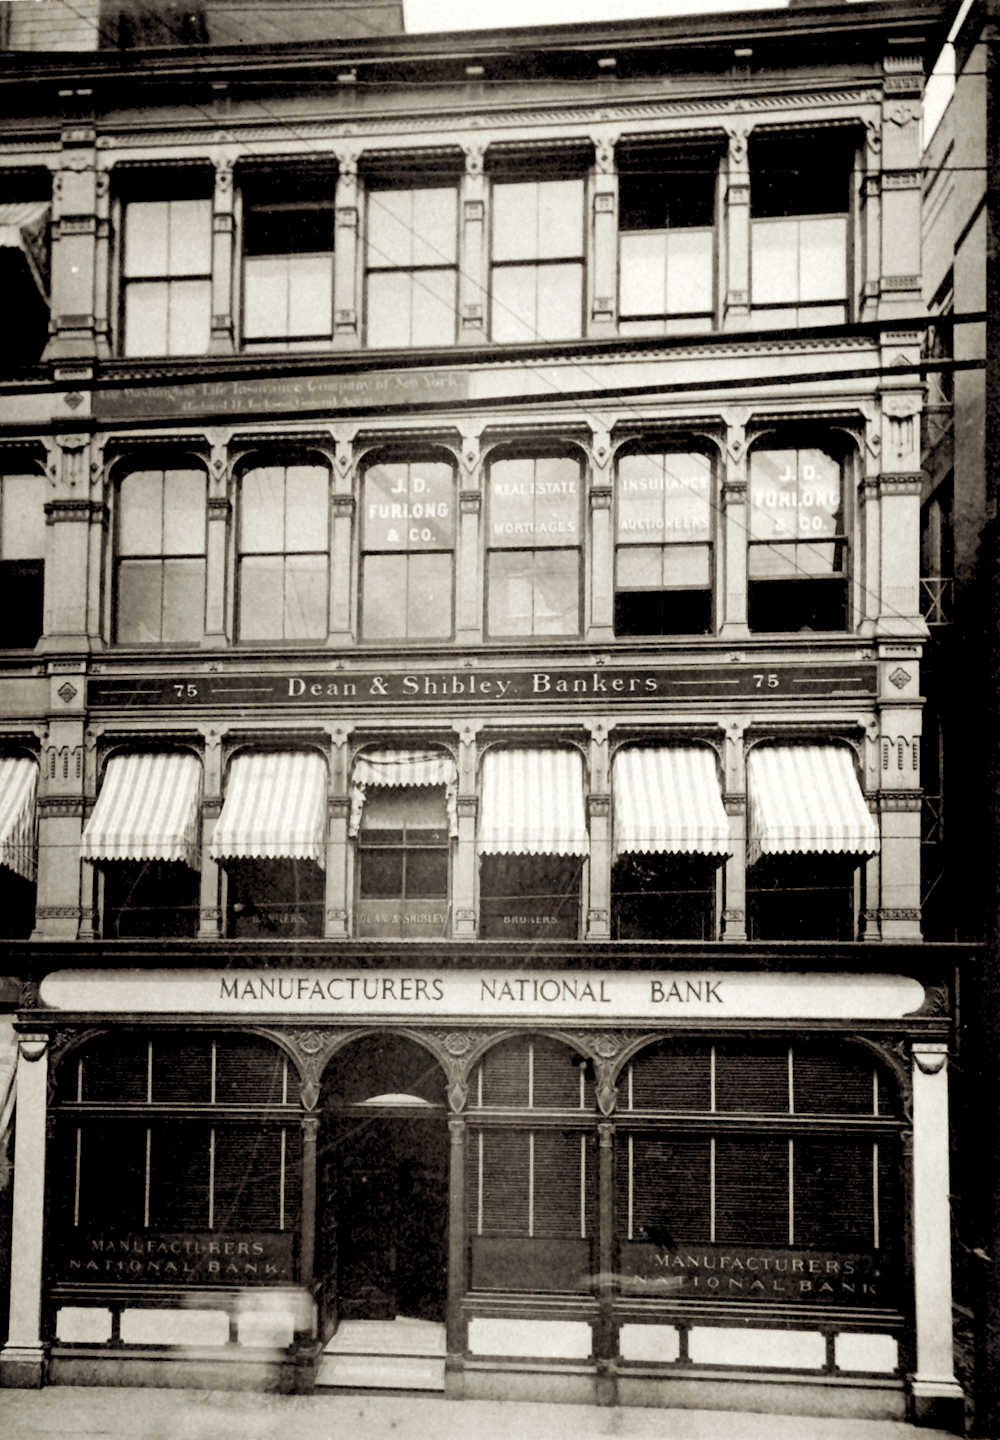 The Manufacturers National Bank offices in the ground floor